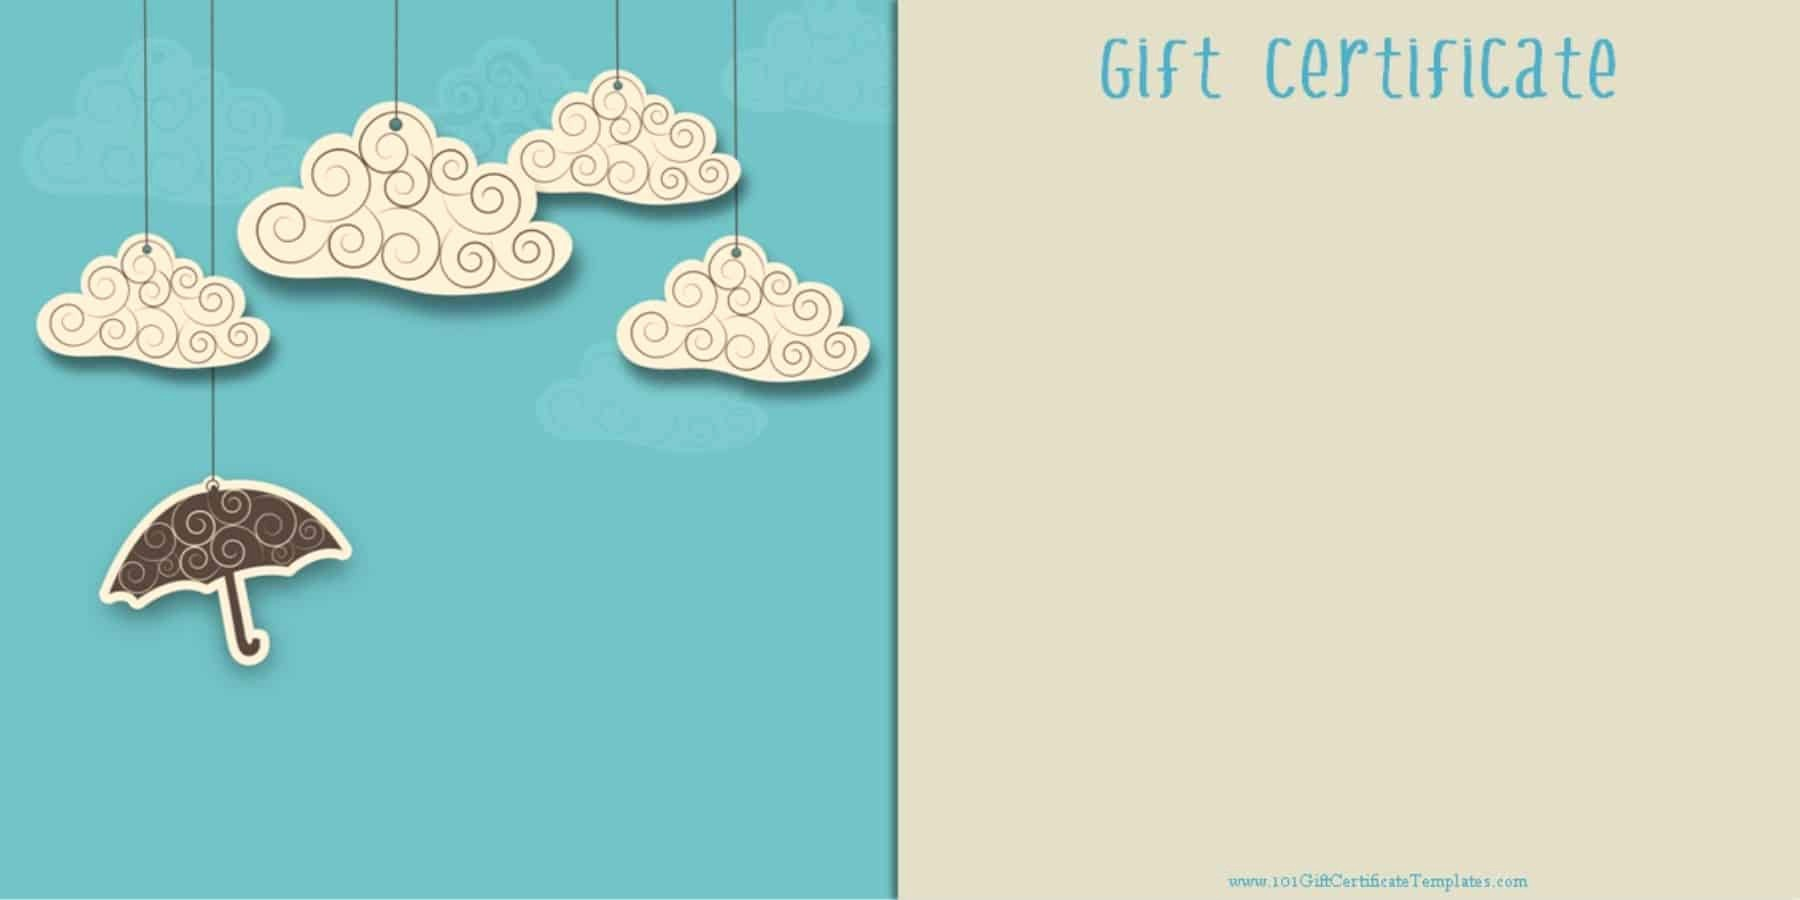 Gift Certificate Templates Free Printable Awesome Printable Gift Certificate Templates